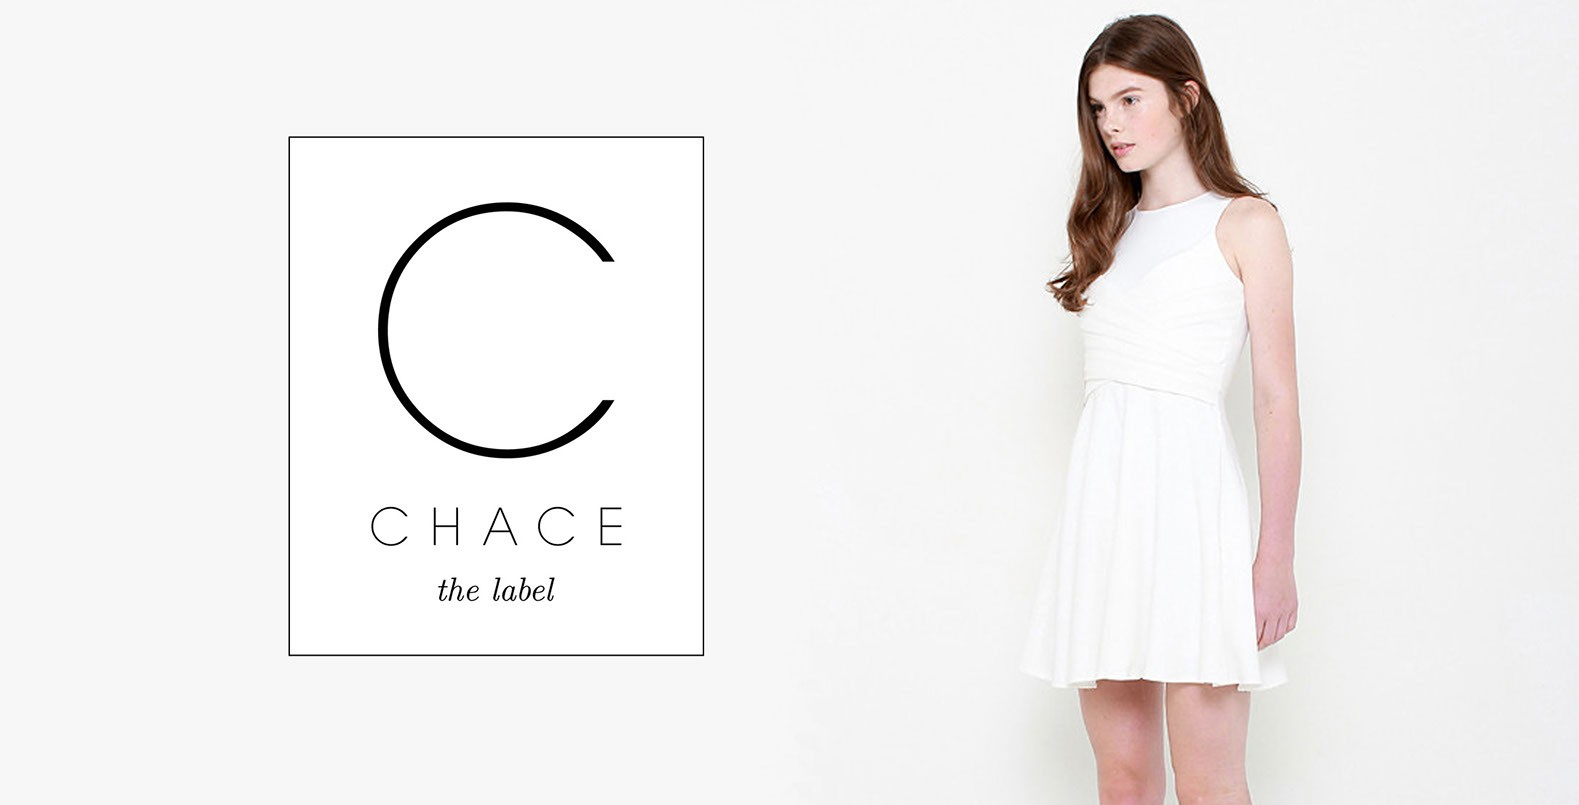 Chace, the label, logo design for fashion brand